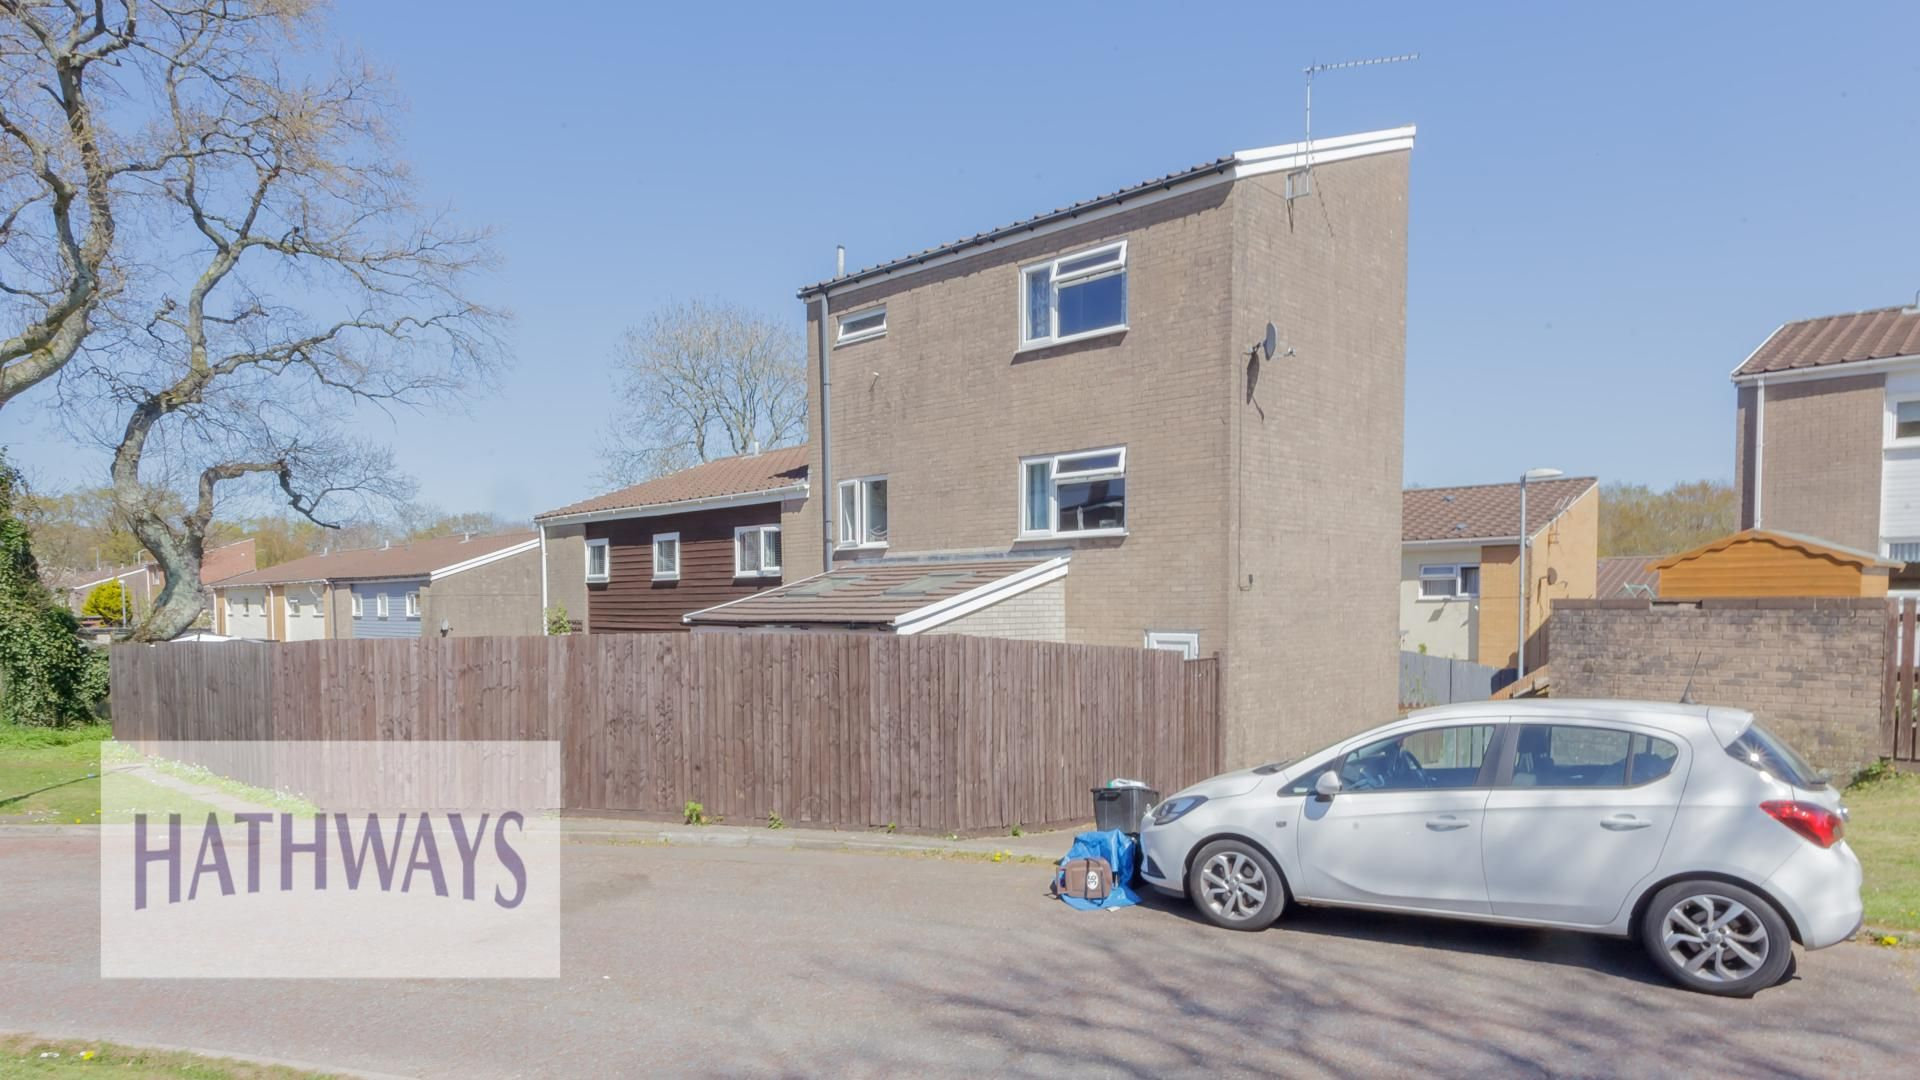 4 bed house for sale in Neerings, NP44